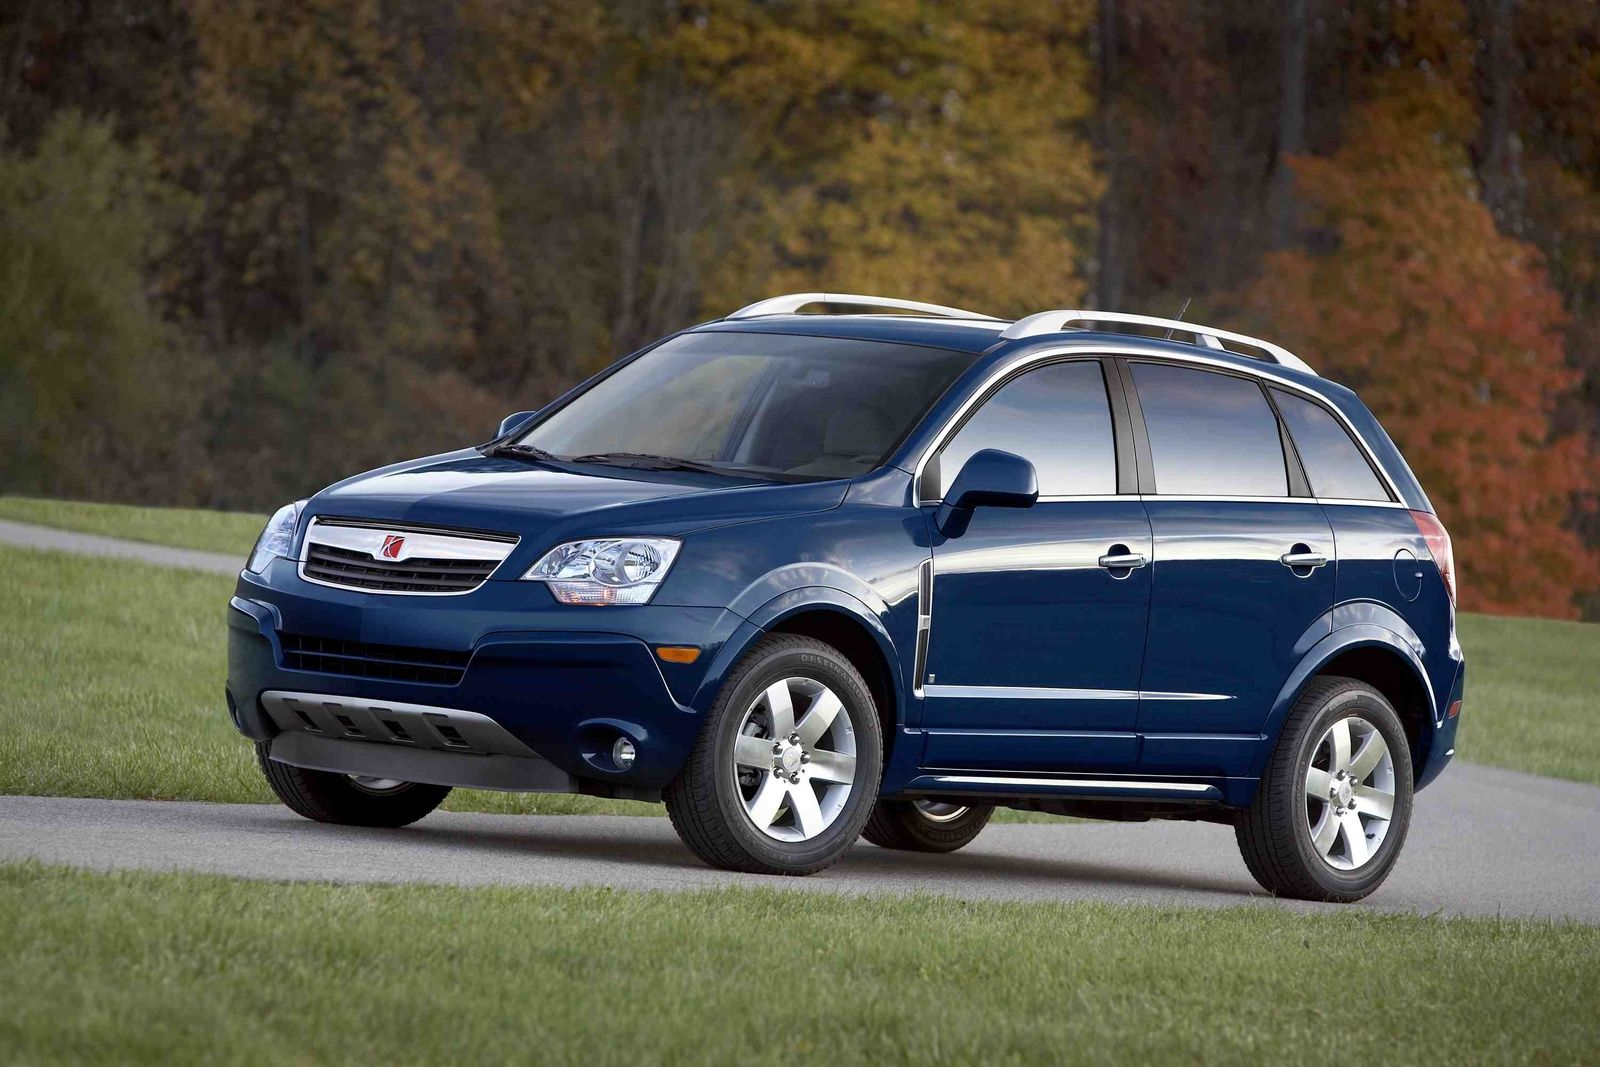 If Your 39 08 39 10 Saturn Vue Or 39 12 39 14 Chevy Captiva Has Blown A Headlight Then It 39 S Time To Replace Your Headlig Car Camera Saturn Car Car